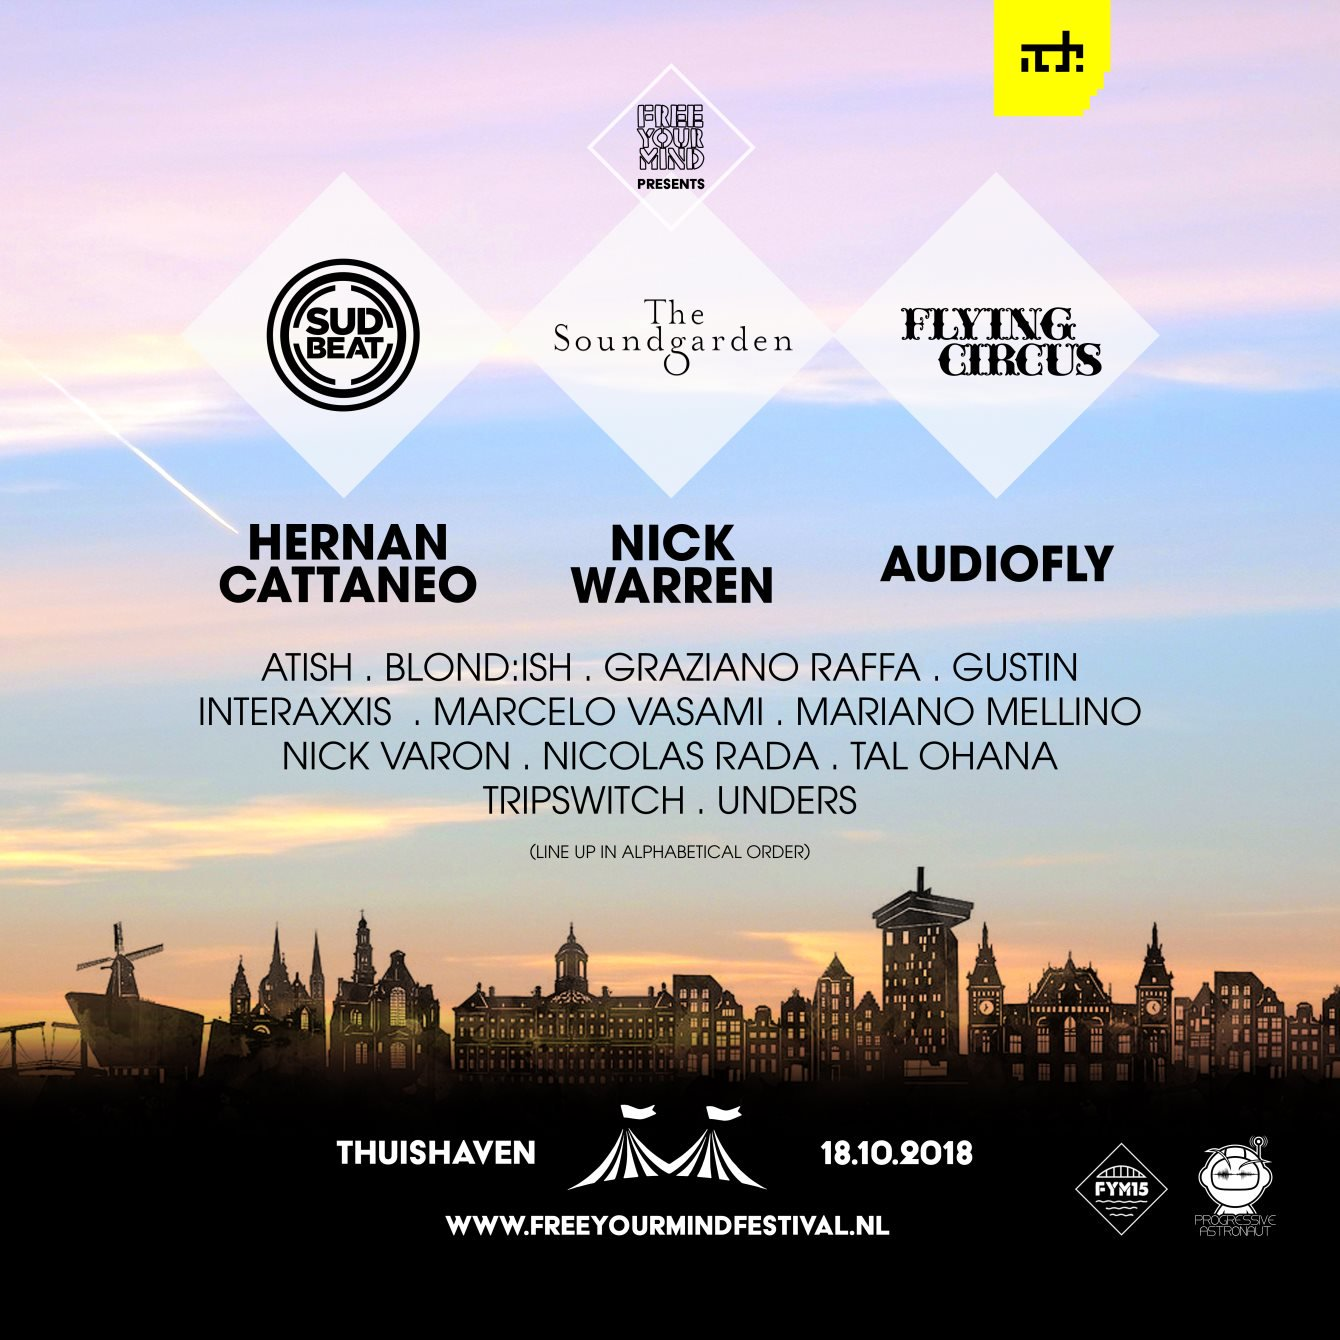 ADE-Nick-warren-atish-blondish-free-your-mind-festival-deephouse-techno.jpg